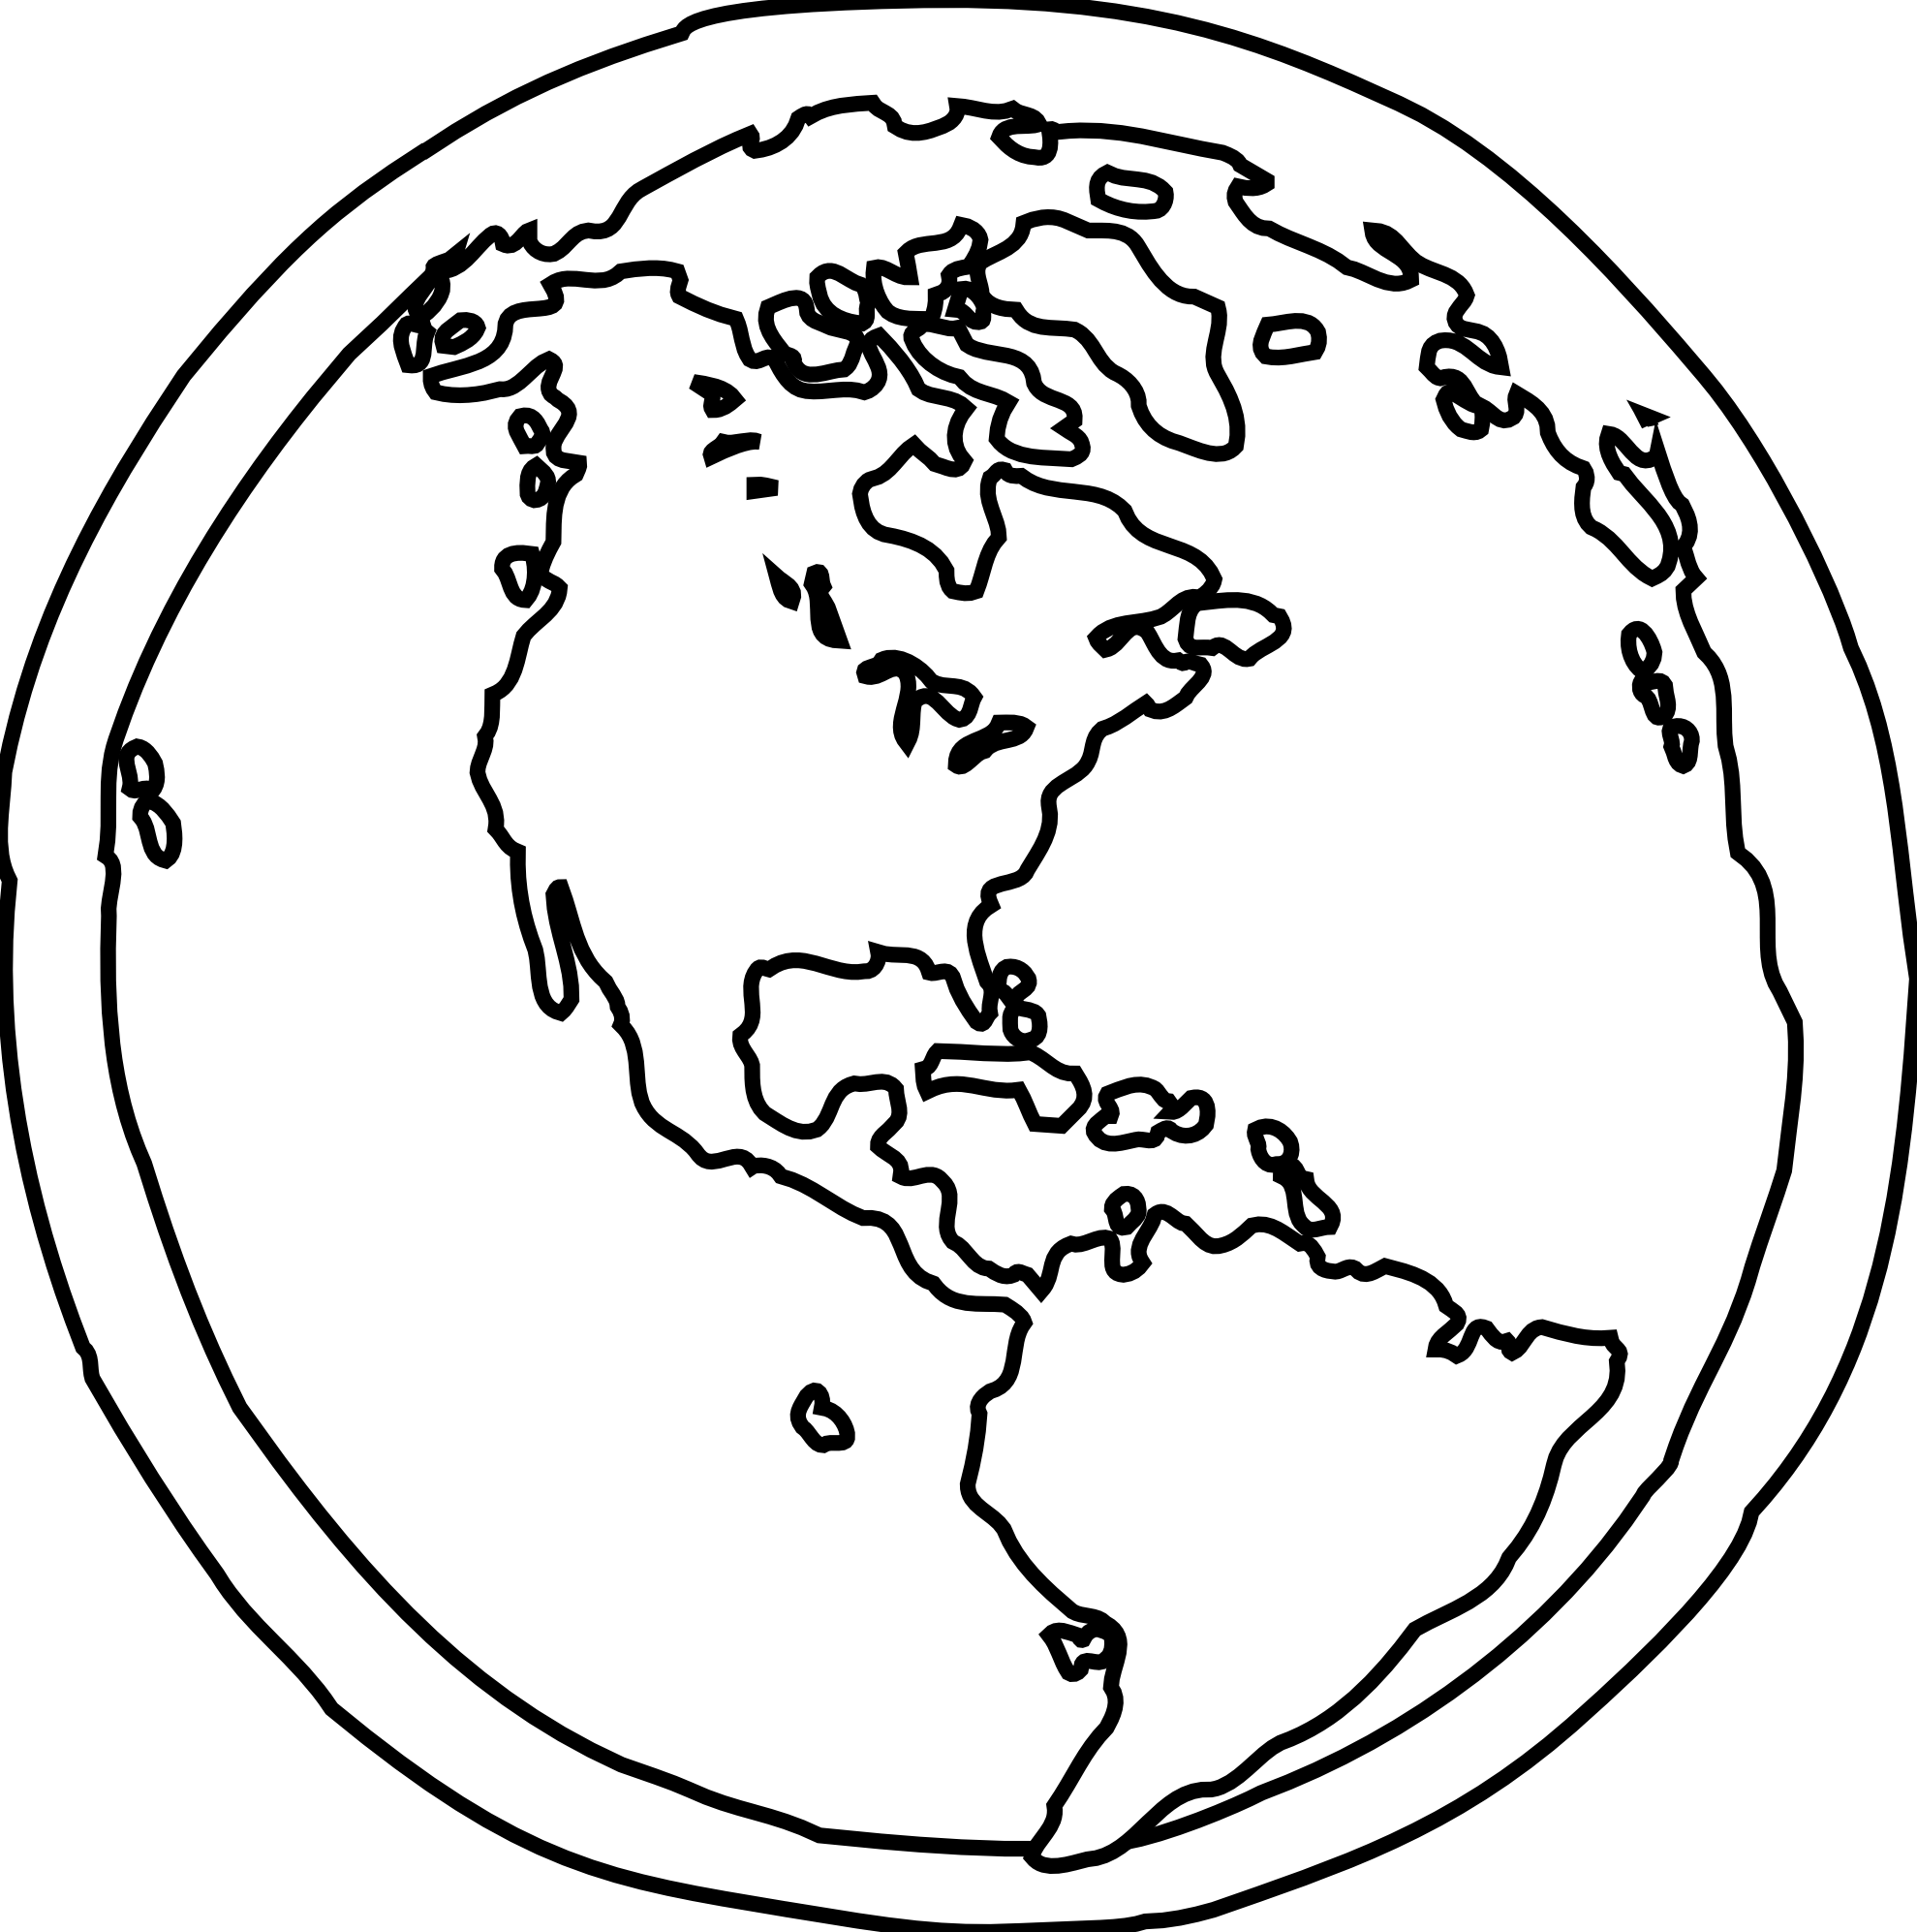 Earth Black And White Outline